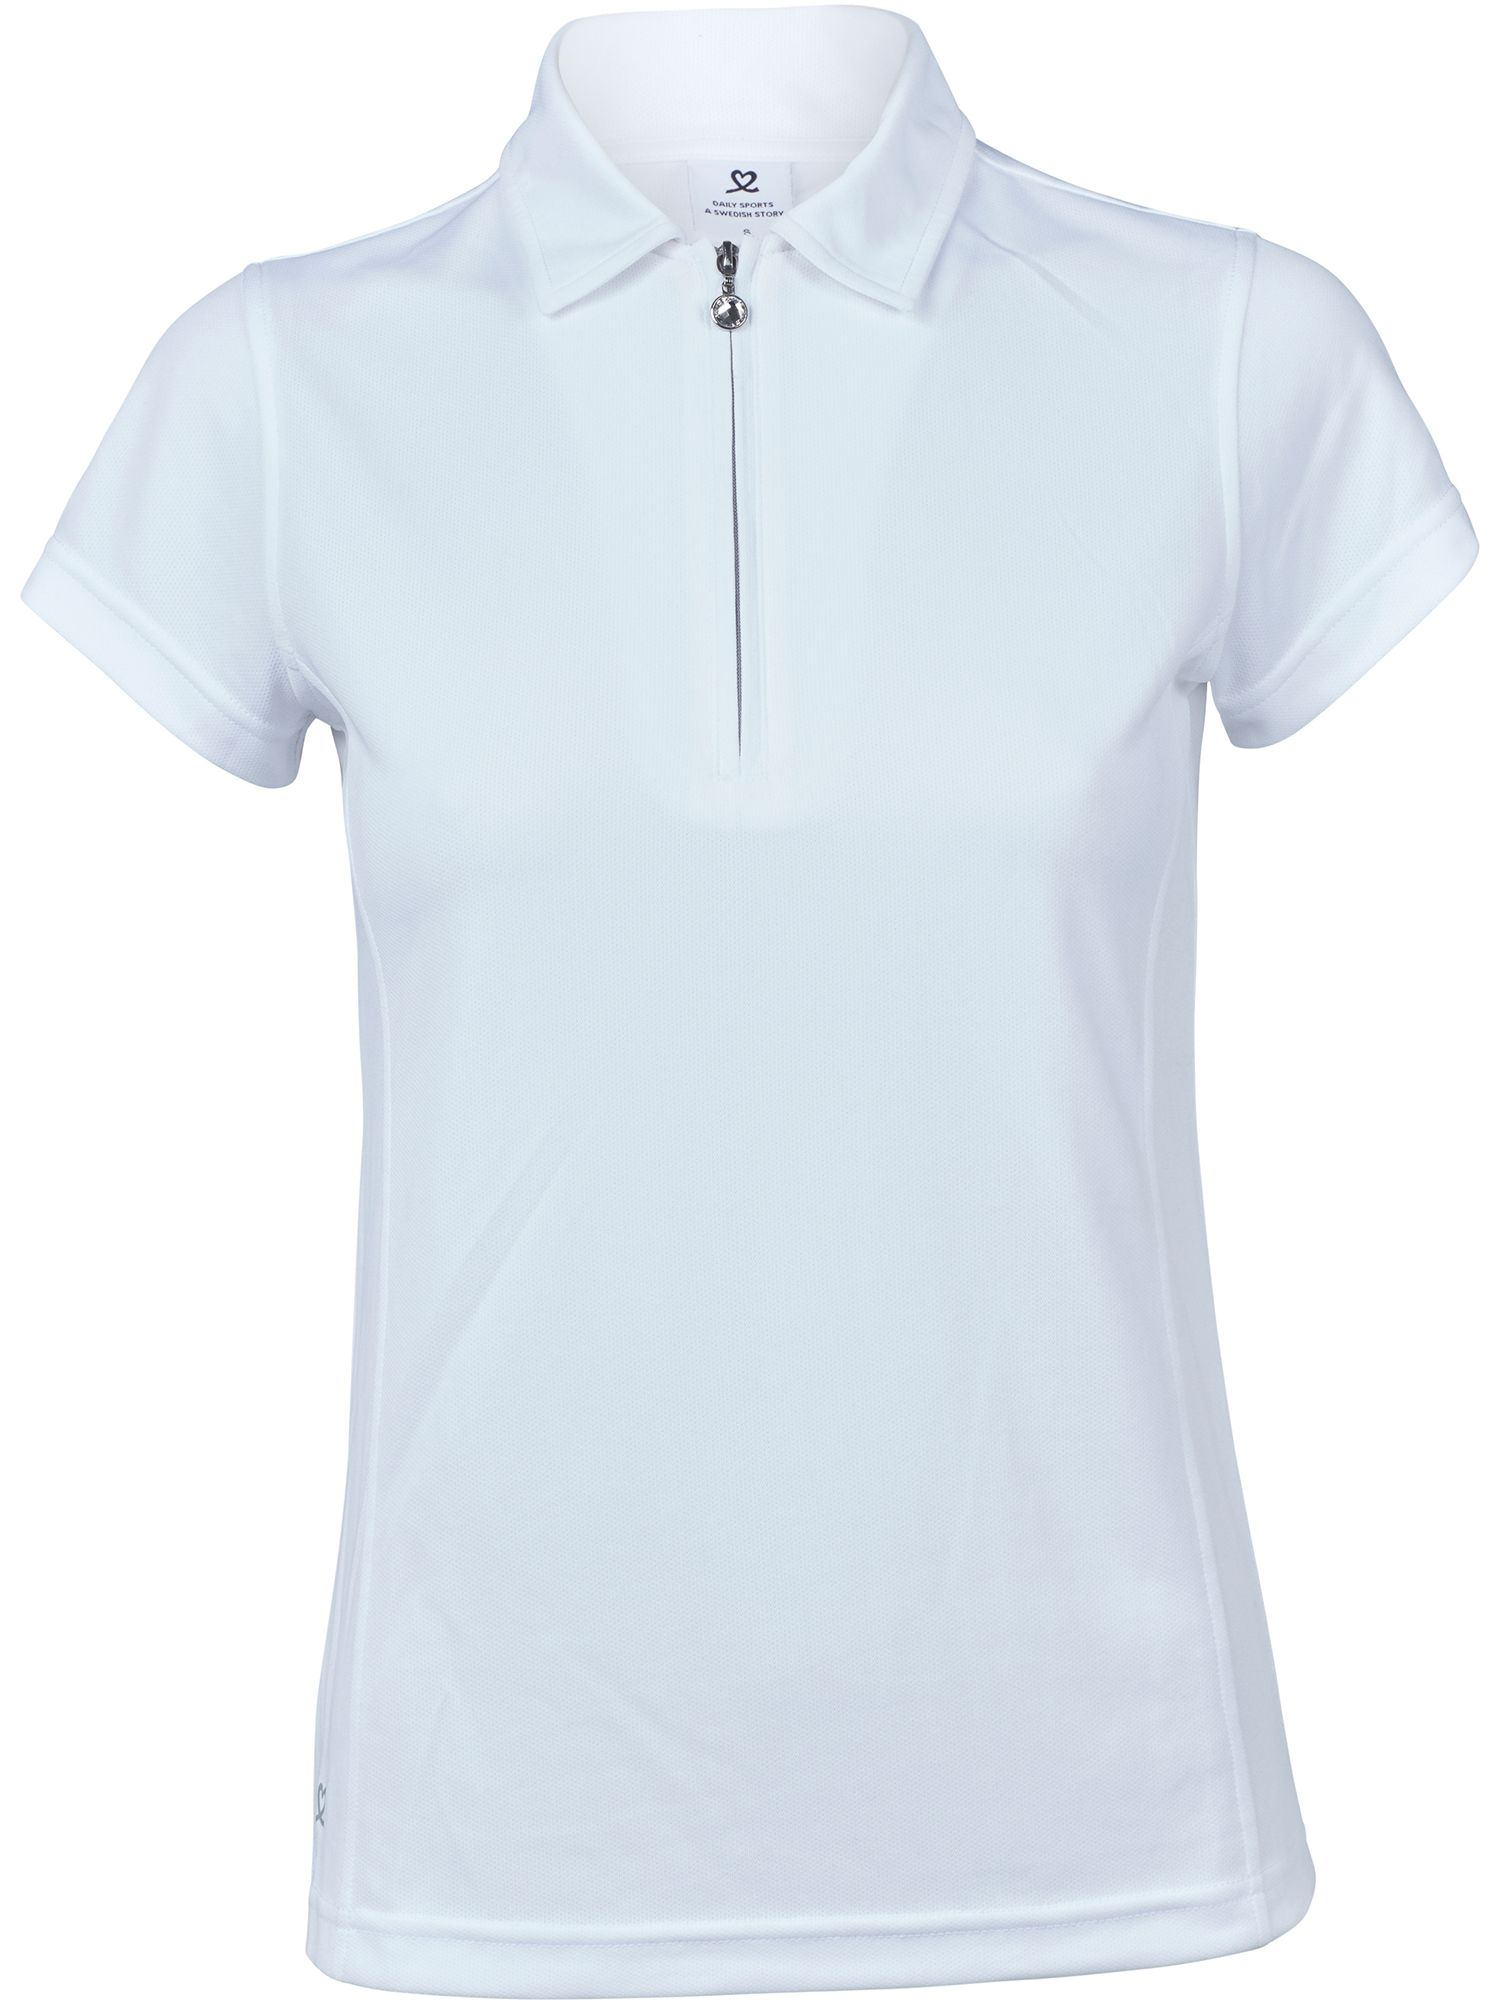 Daily Sports Macy Cap Sleeve Polo Shirt, White